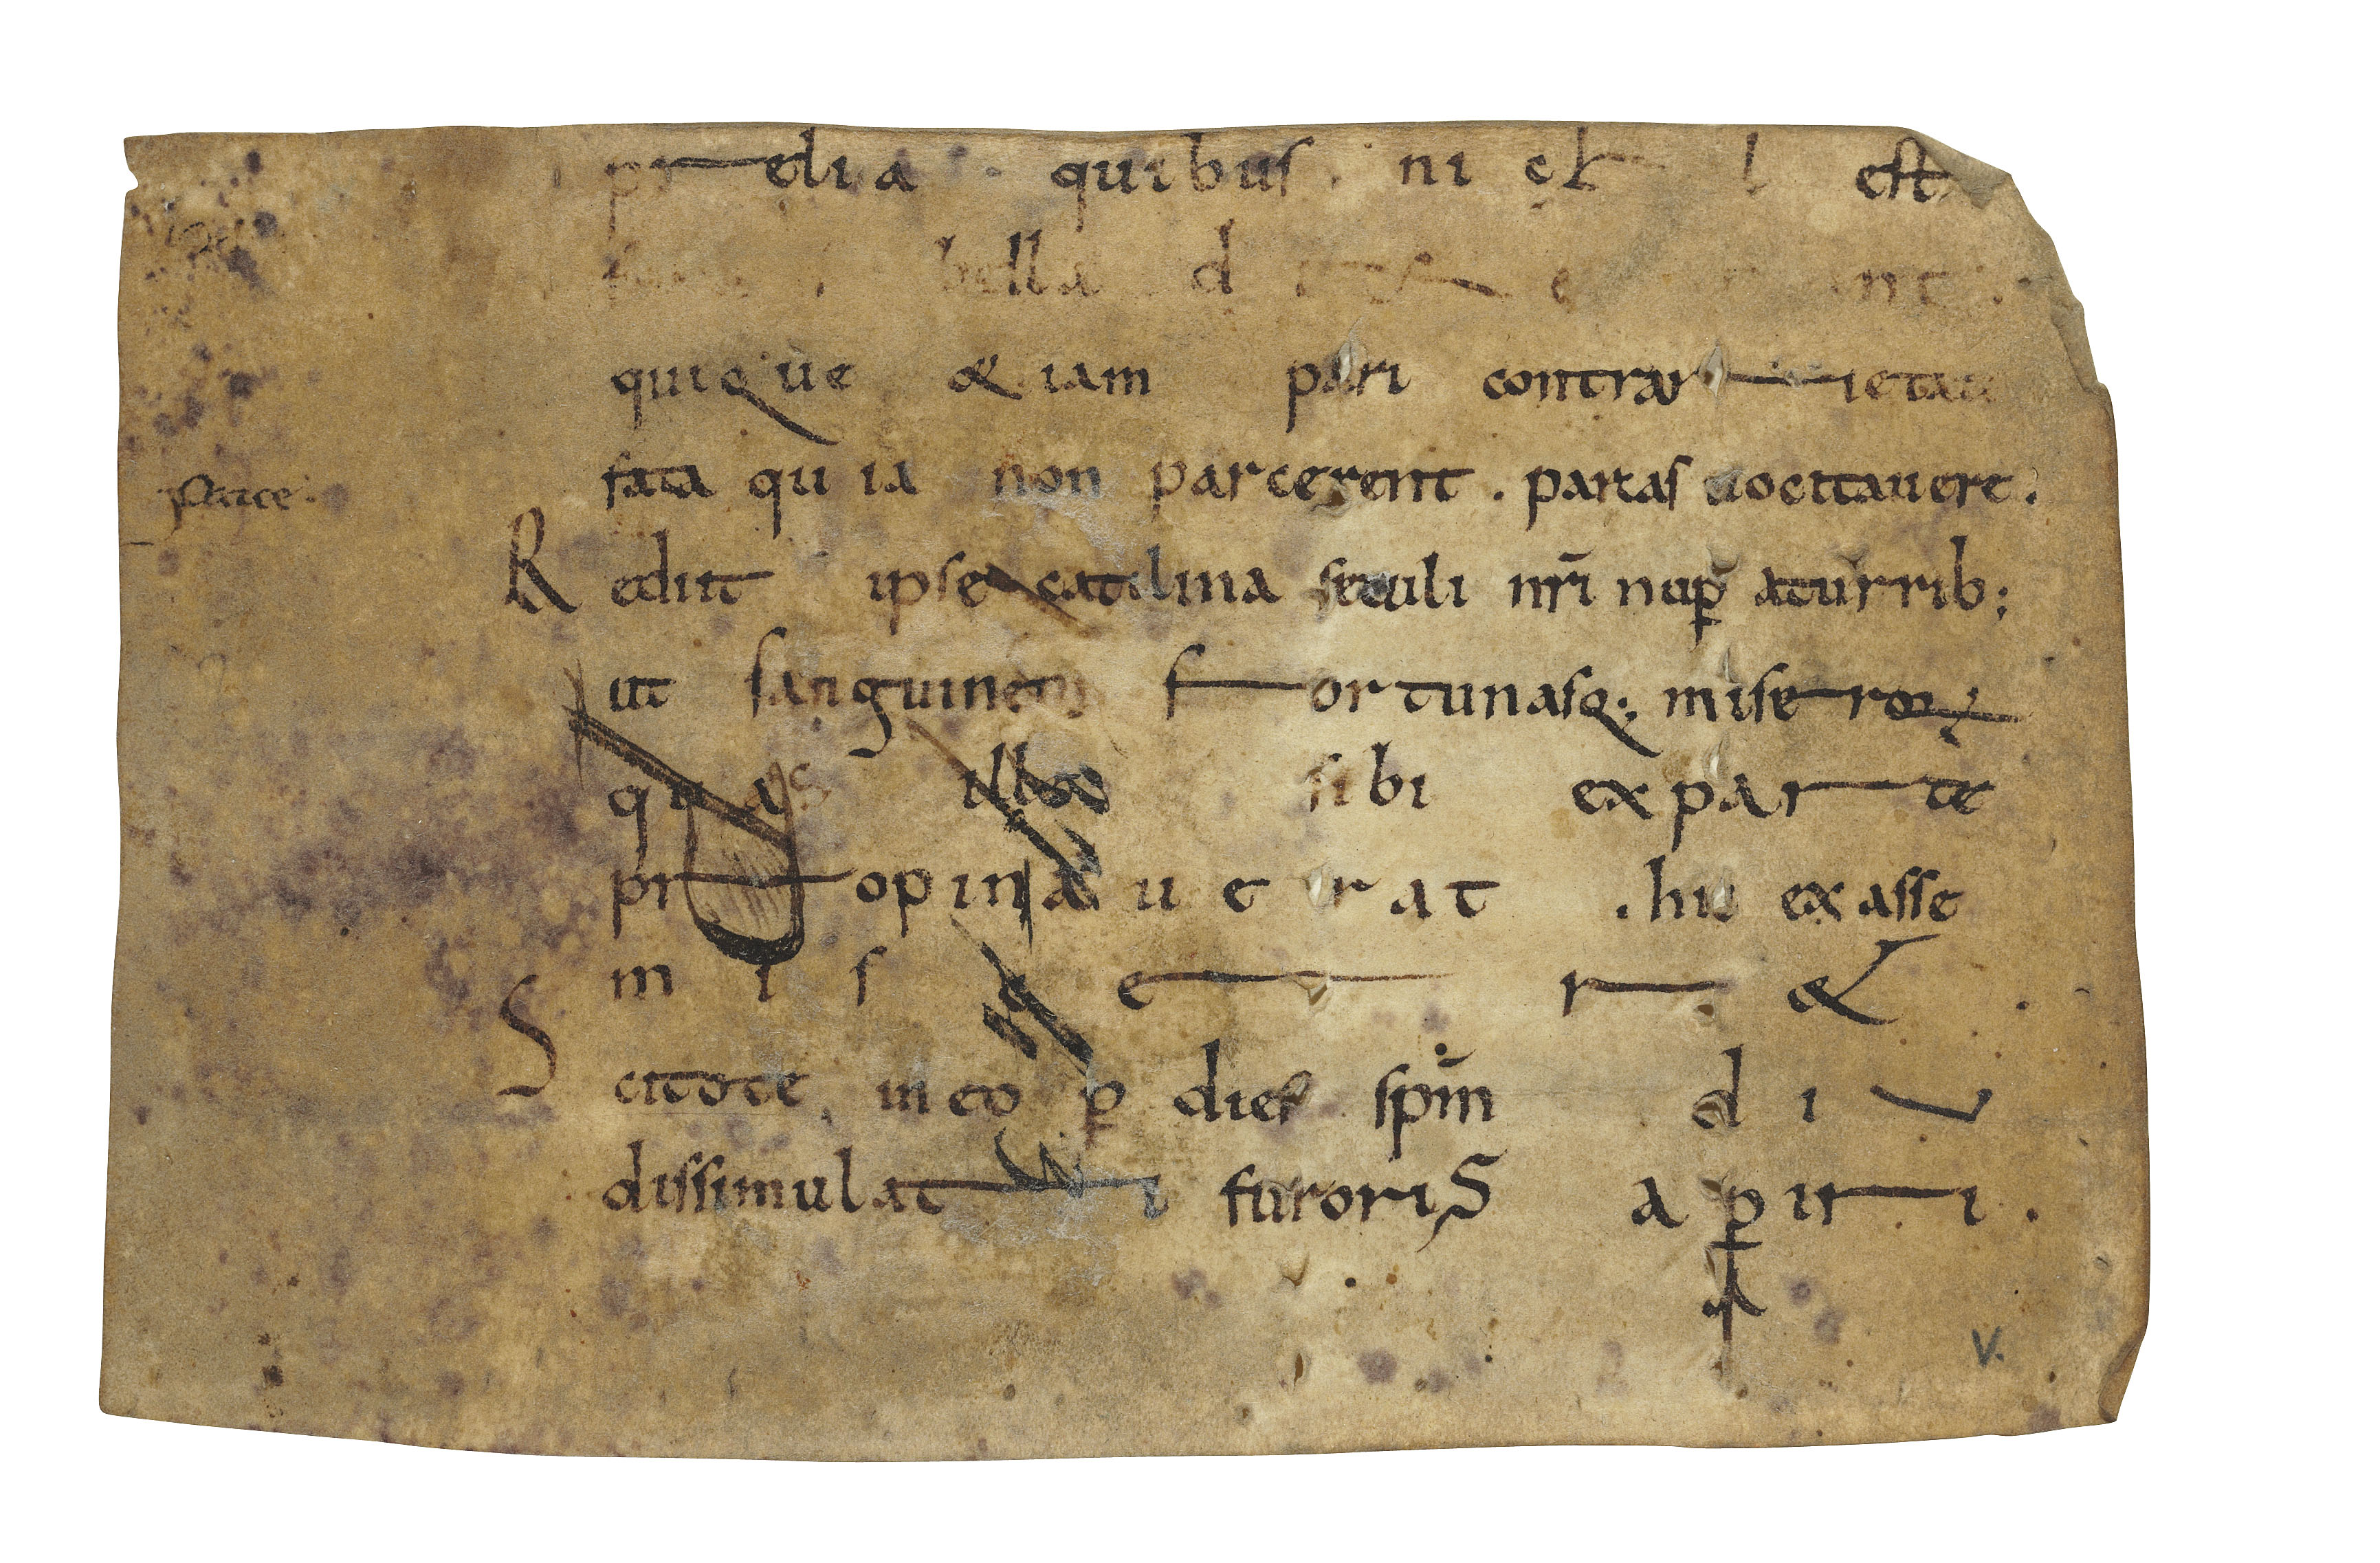 SIDONIUS APOLLINARIS (c.430/33-c.479), Epistolae, in Latin, manuscript on vellum [?France, late 10th century]